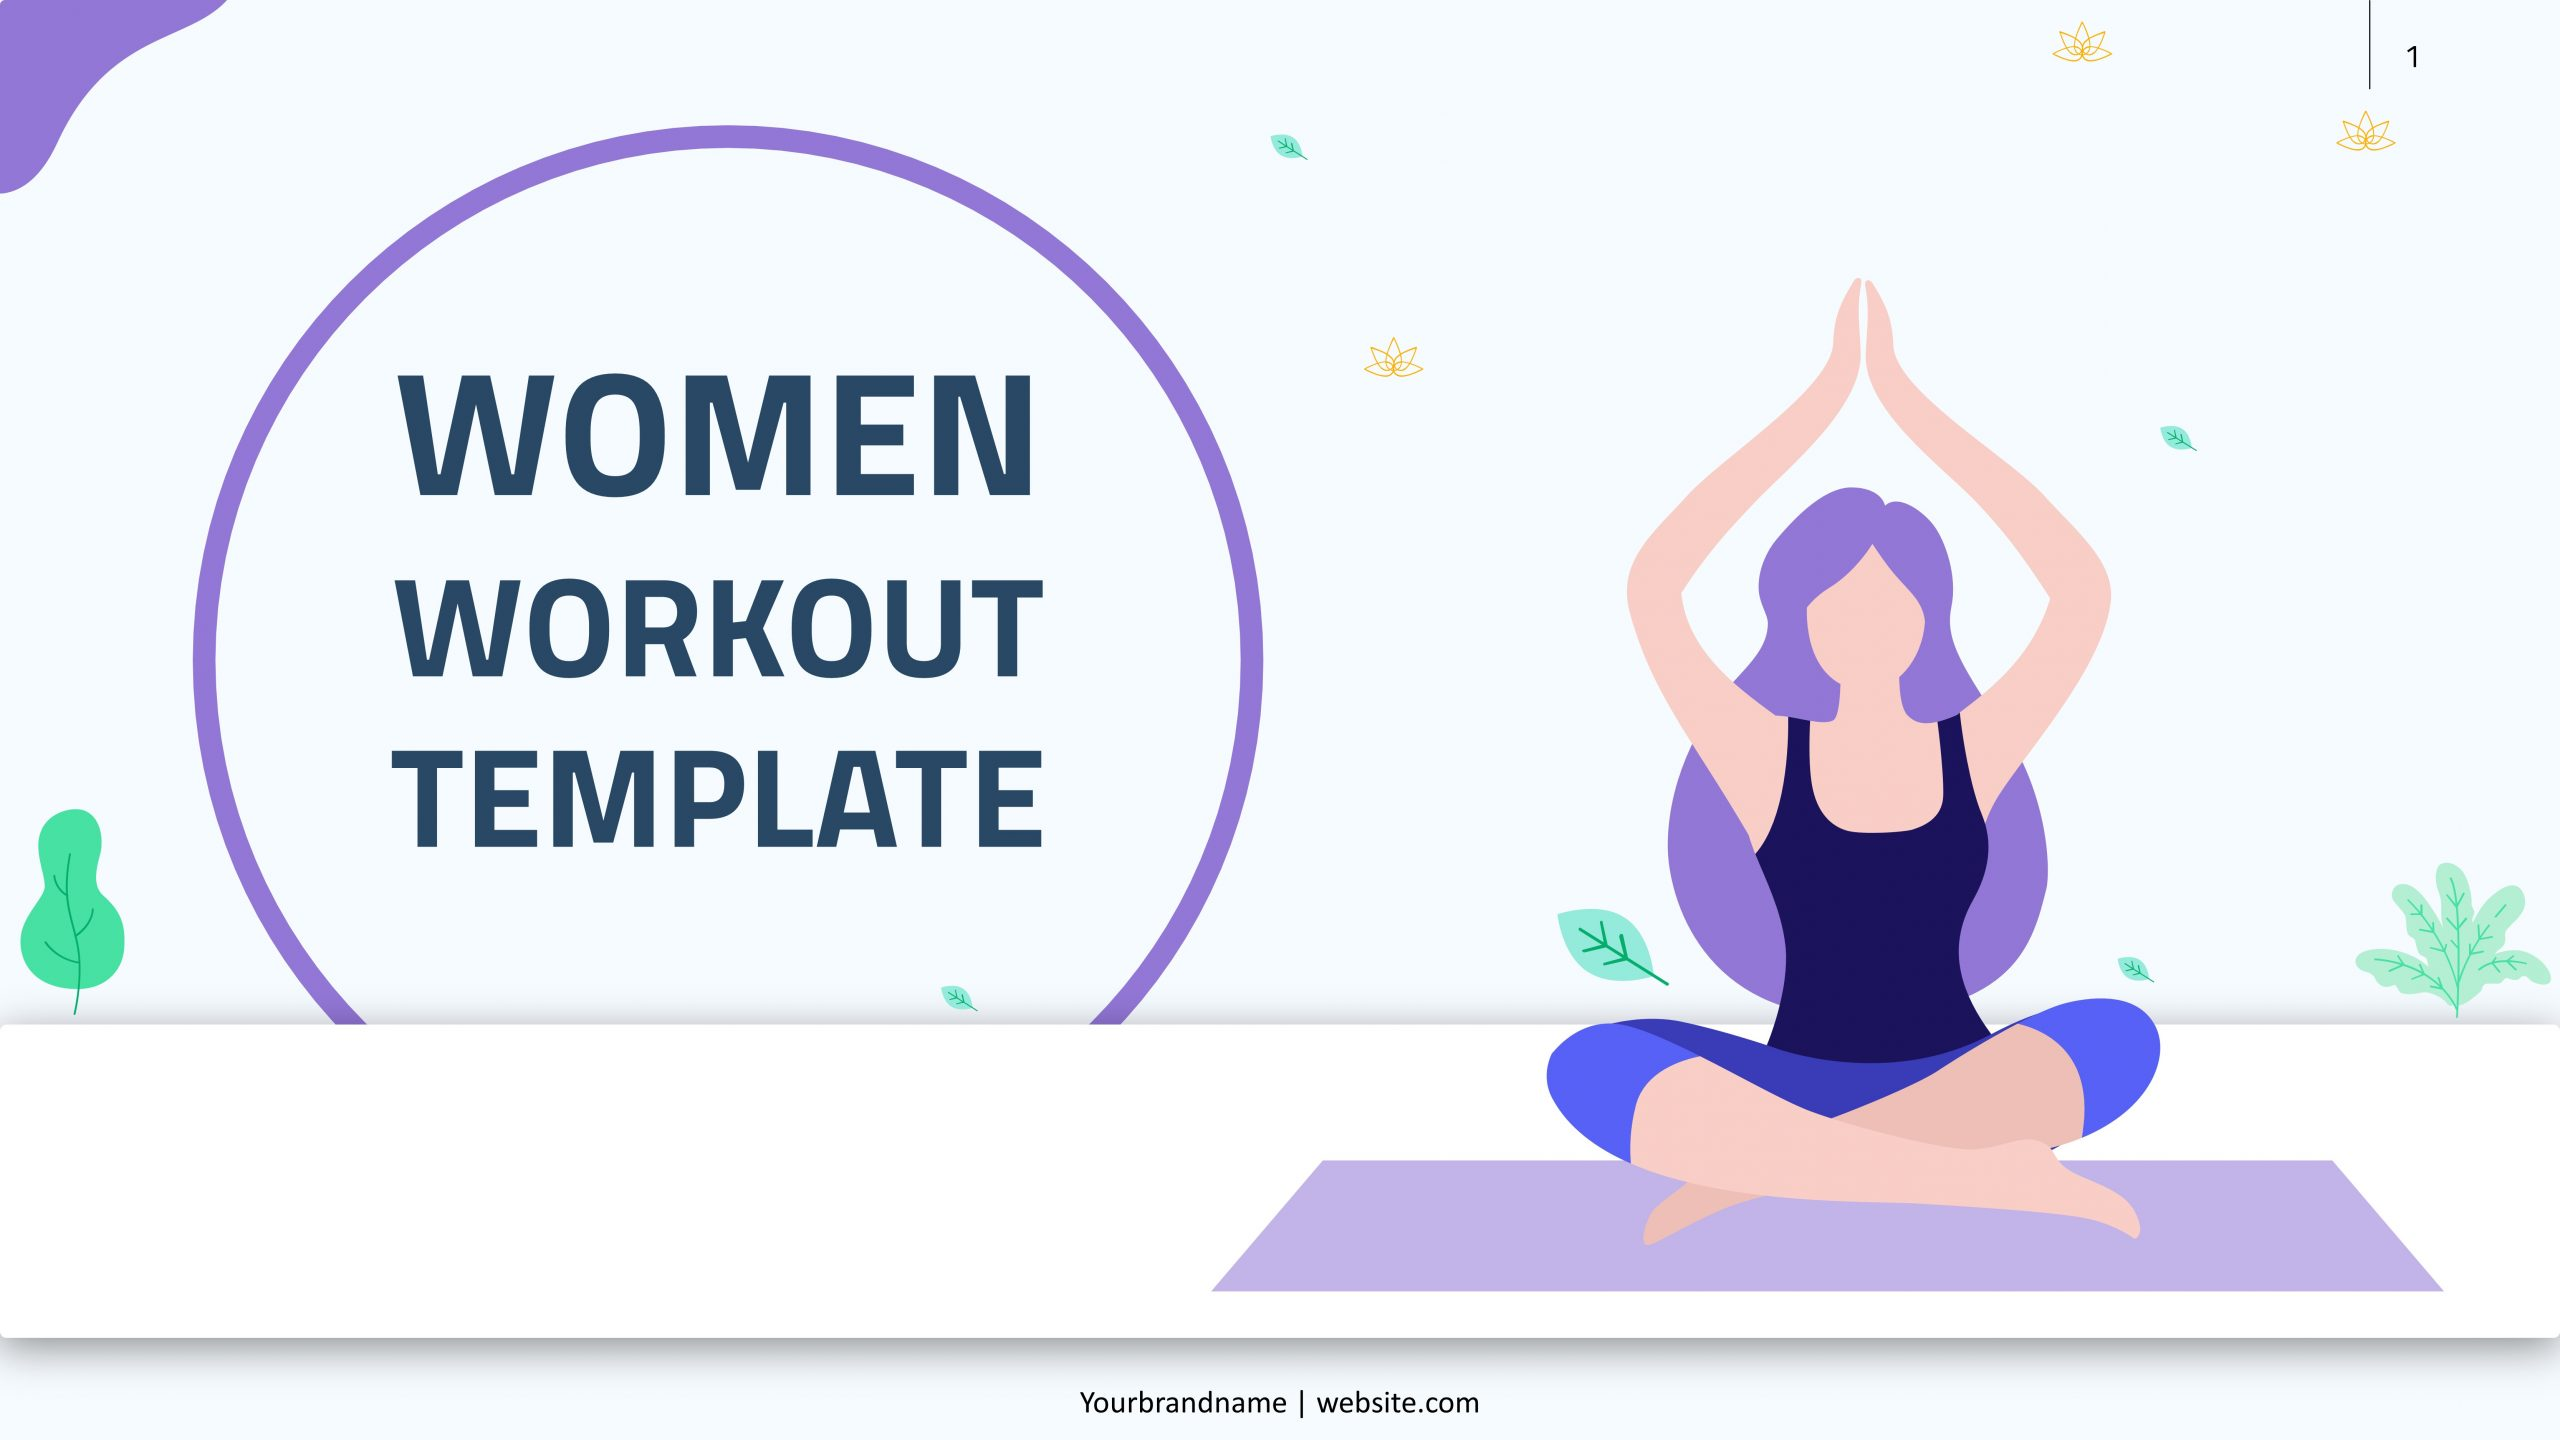 Free presentation template of Women Workout